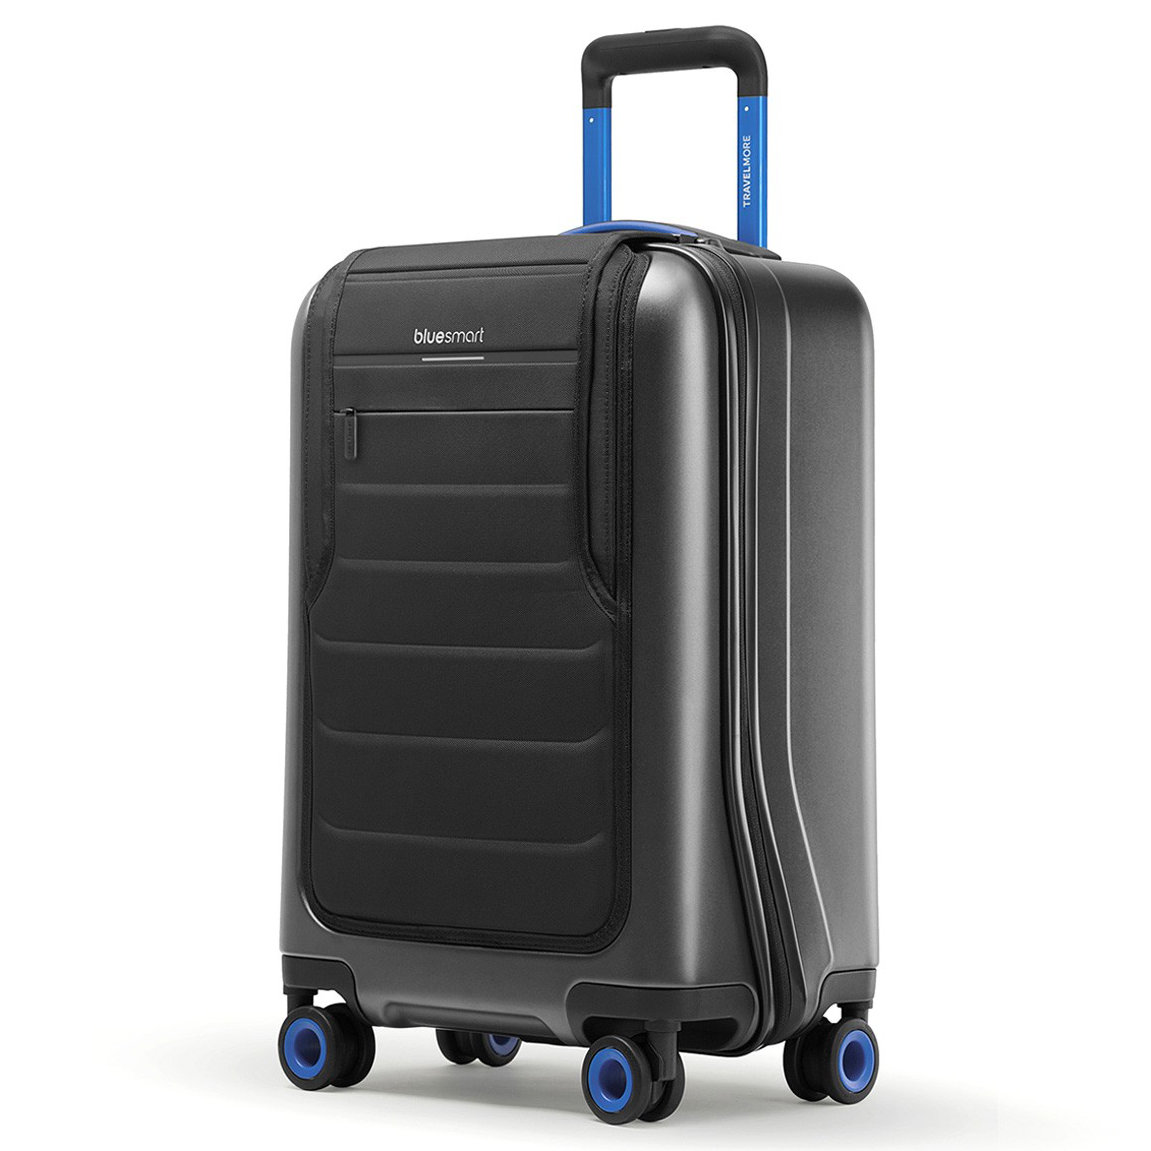 7 Best Smart Luggage Products For 2018 Reviews For Smart